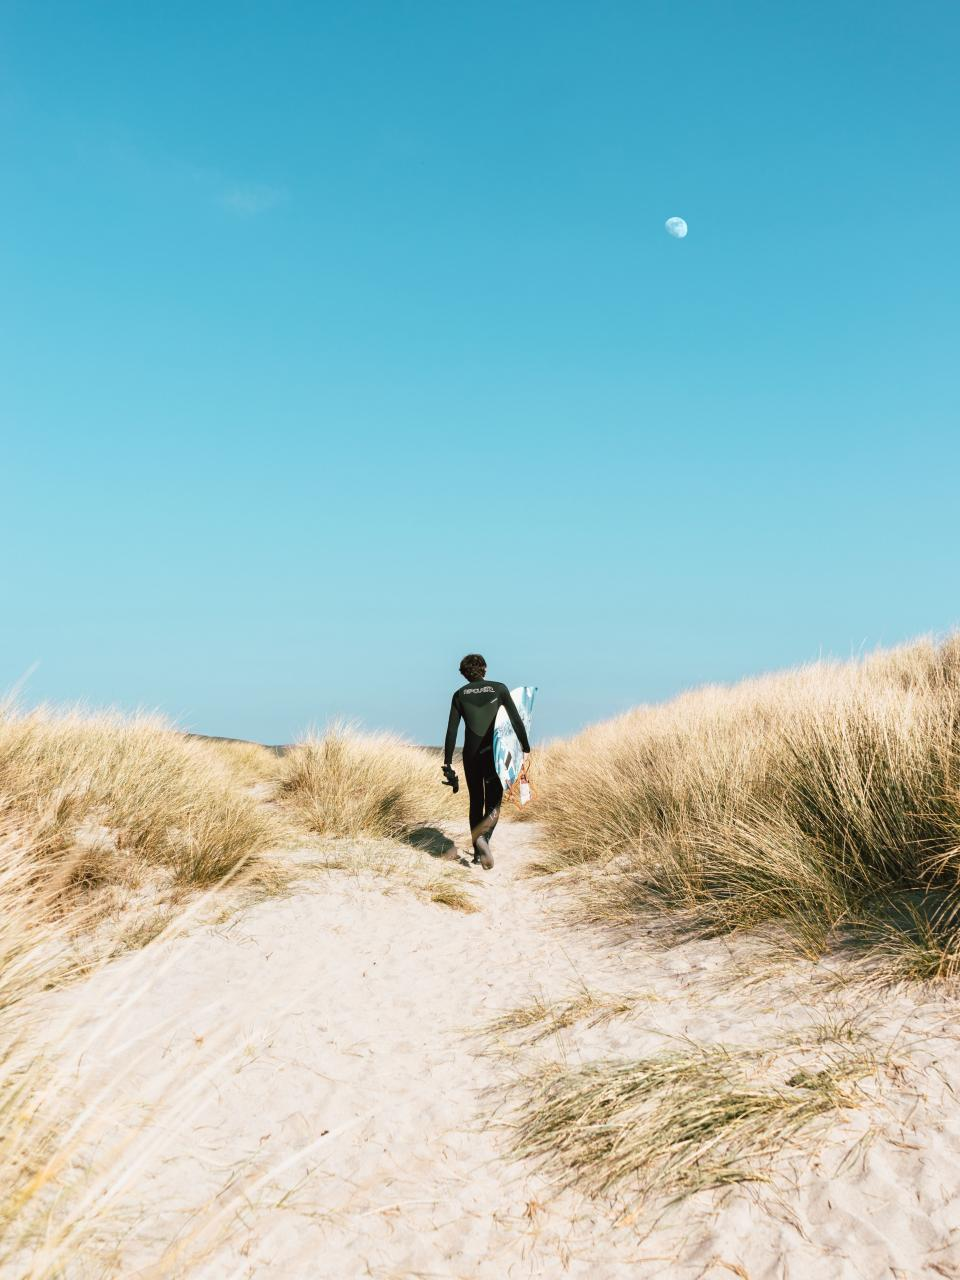 mountain, highland, white, sand, surfing, adventure, outdoor, grass, landscape, people, guy, man, walking, alone, sport, sunny, day, blue, sky